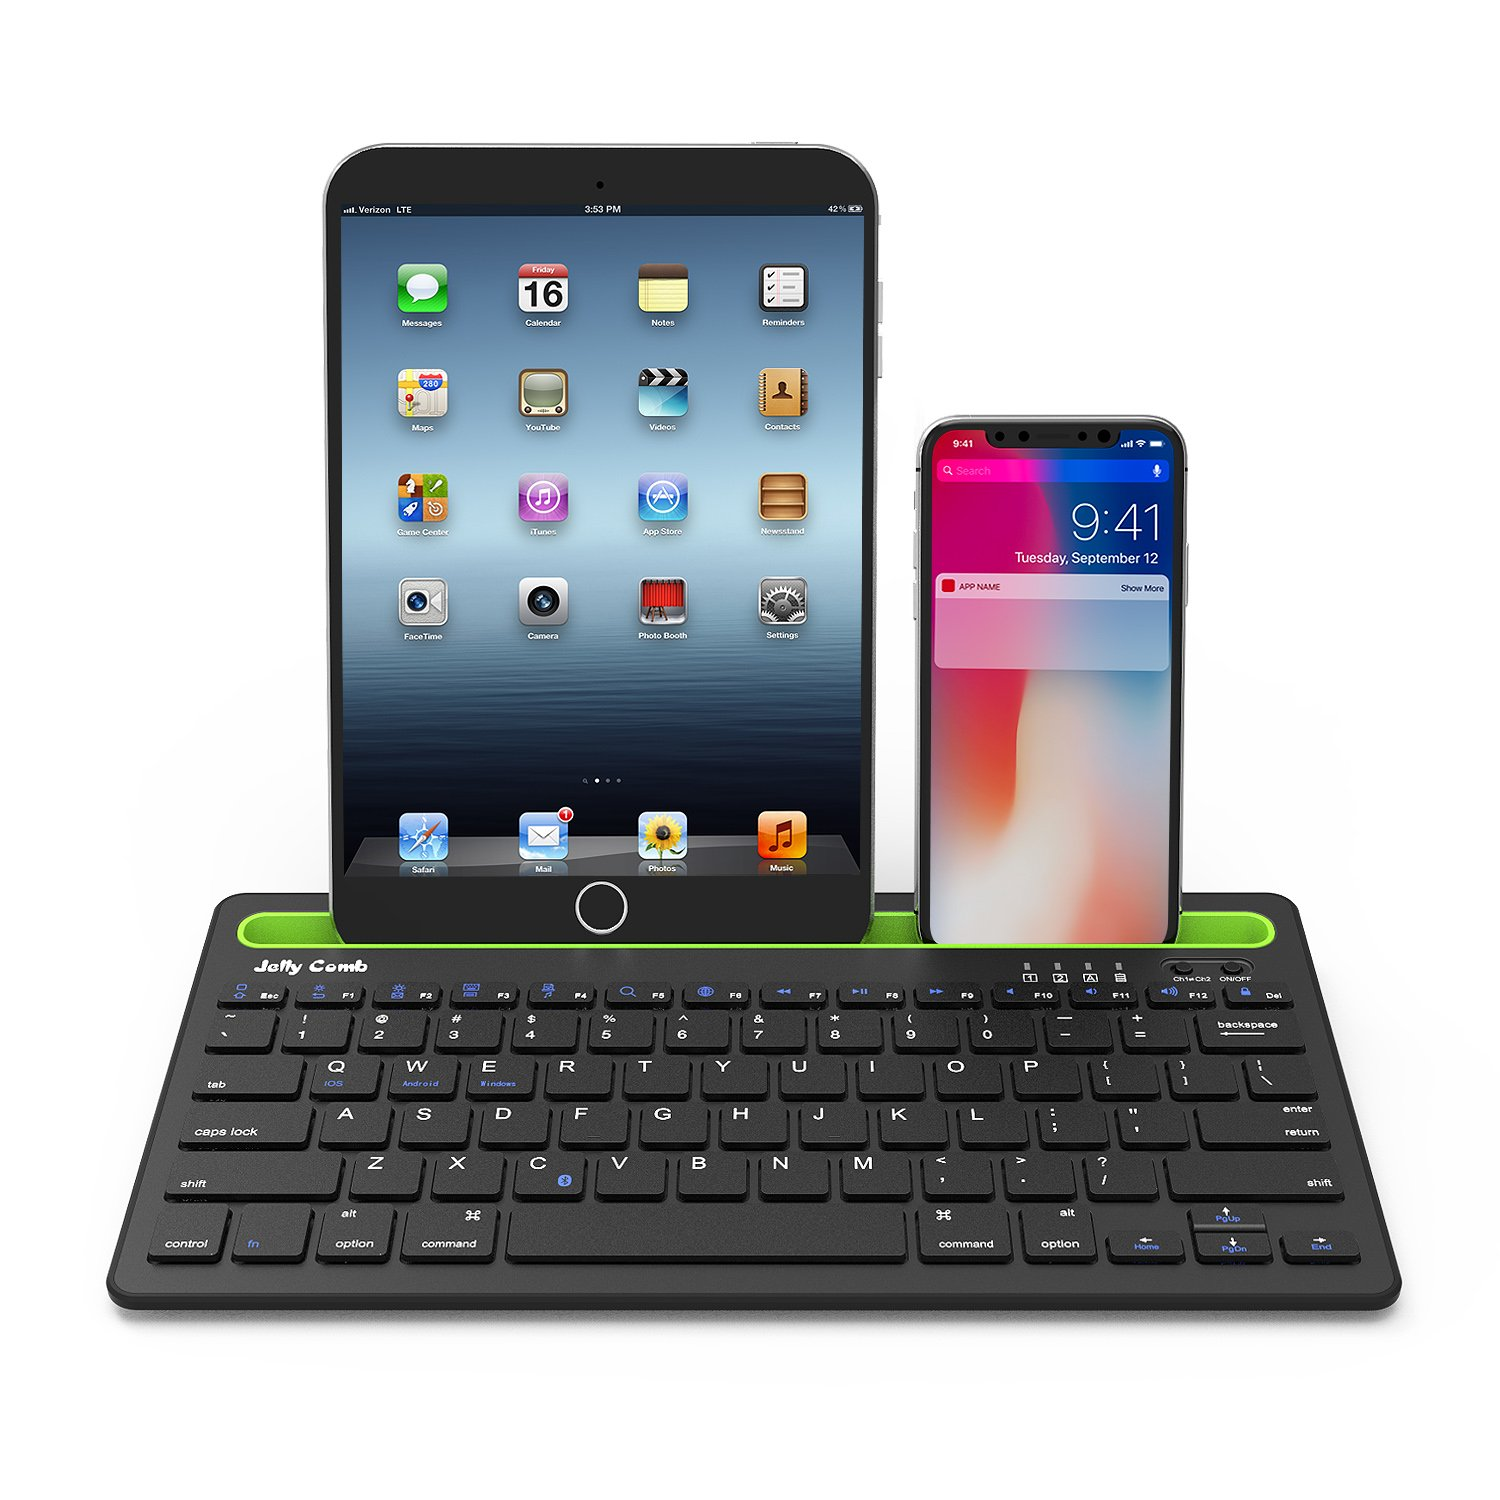 Bluetooth keyboard, Jelly Comb BK230 Dual Channel Multi-device Universal Wireless Bluetooth Keyboard Rechargeable with Sturdy Stand for Tablet Smartphone PC Windows Android iOS Mac (Black and Green) by Jelly Comb (Image #9)